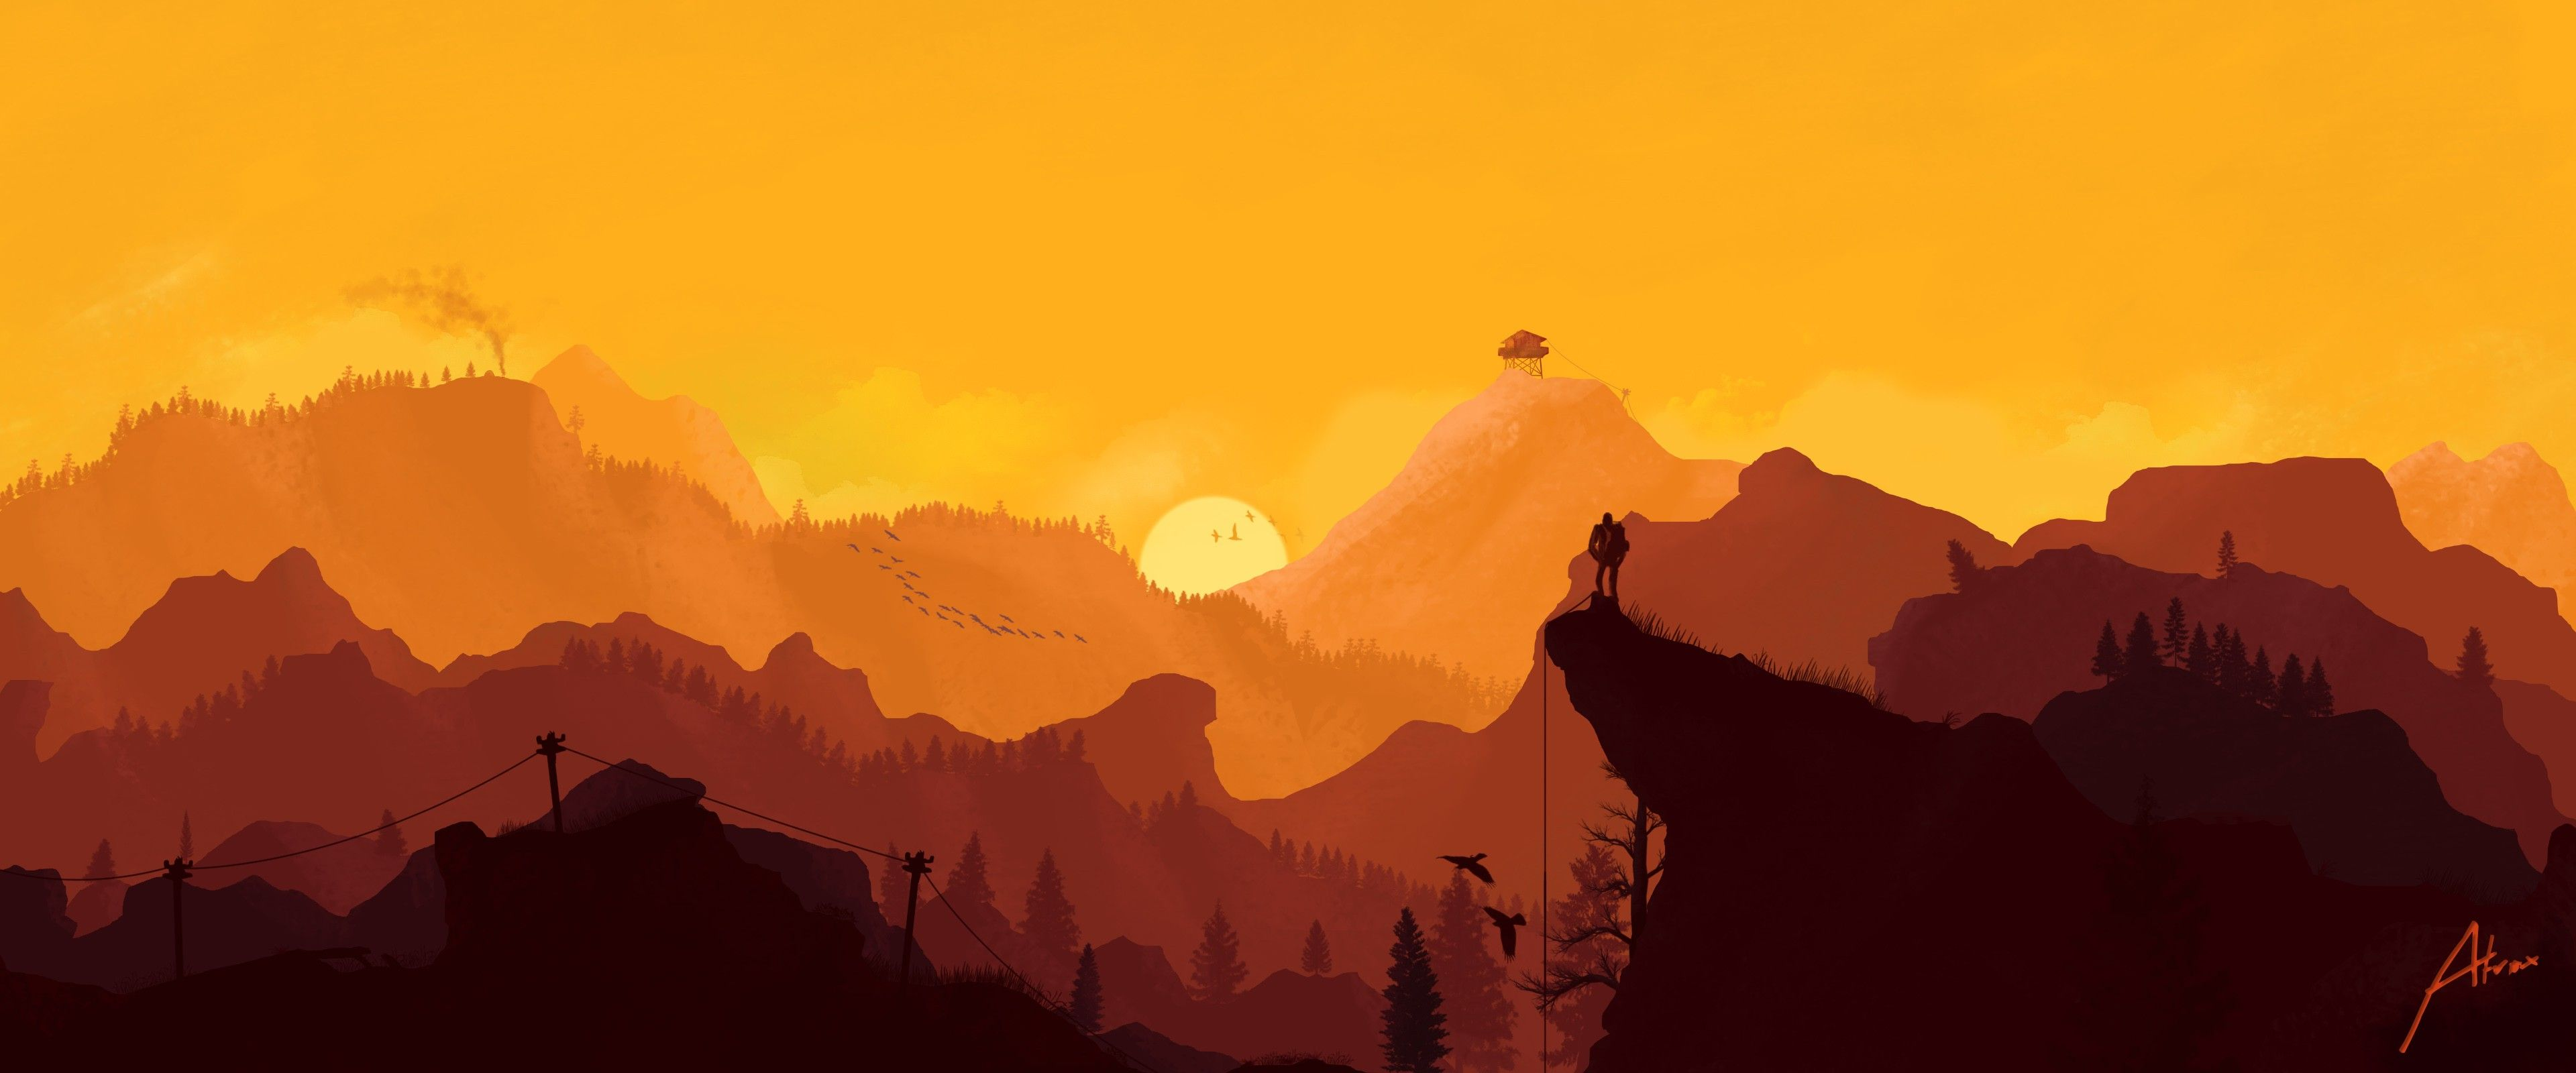 General 3840x1600 Firewatch Video Games Landscape Mountain Paintings Hd Wallpaper Landscape Wallpaper